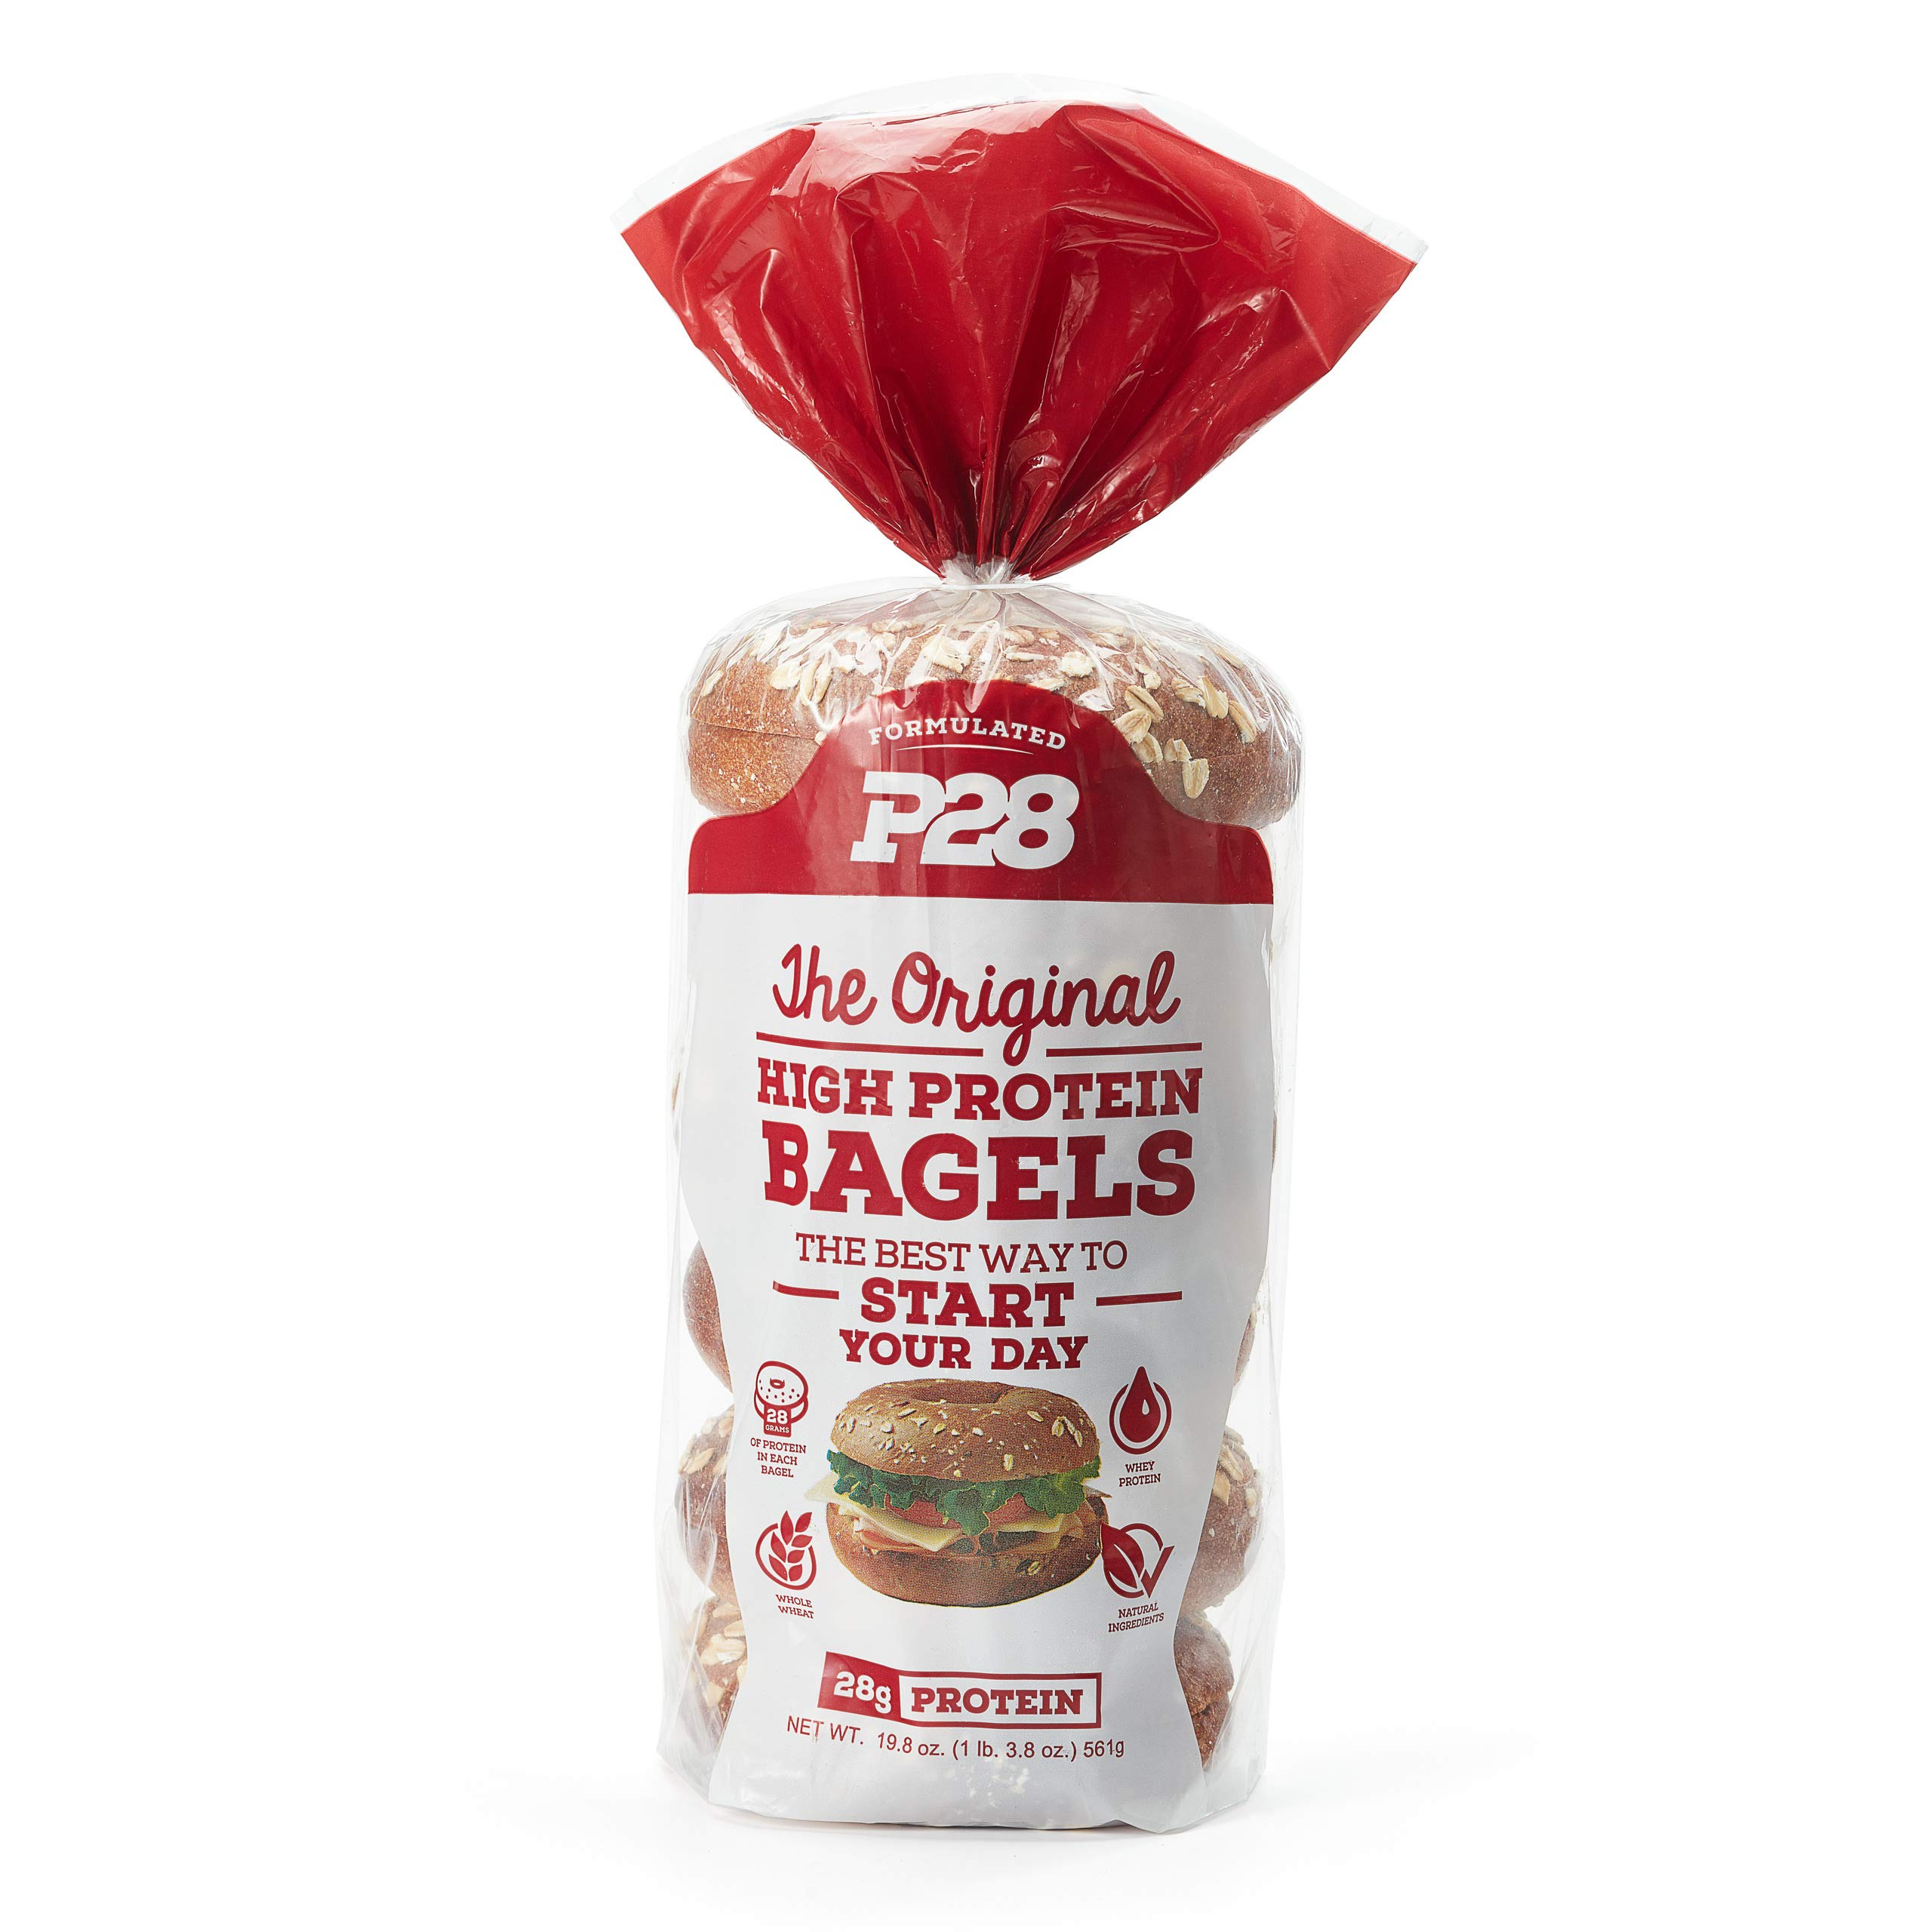 P28 High Protein Bagels, 19 OZ